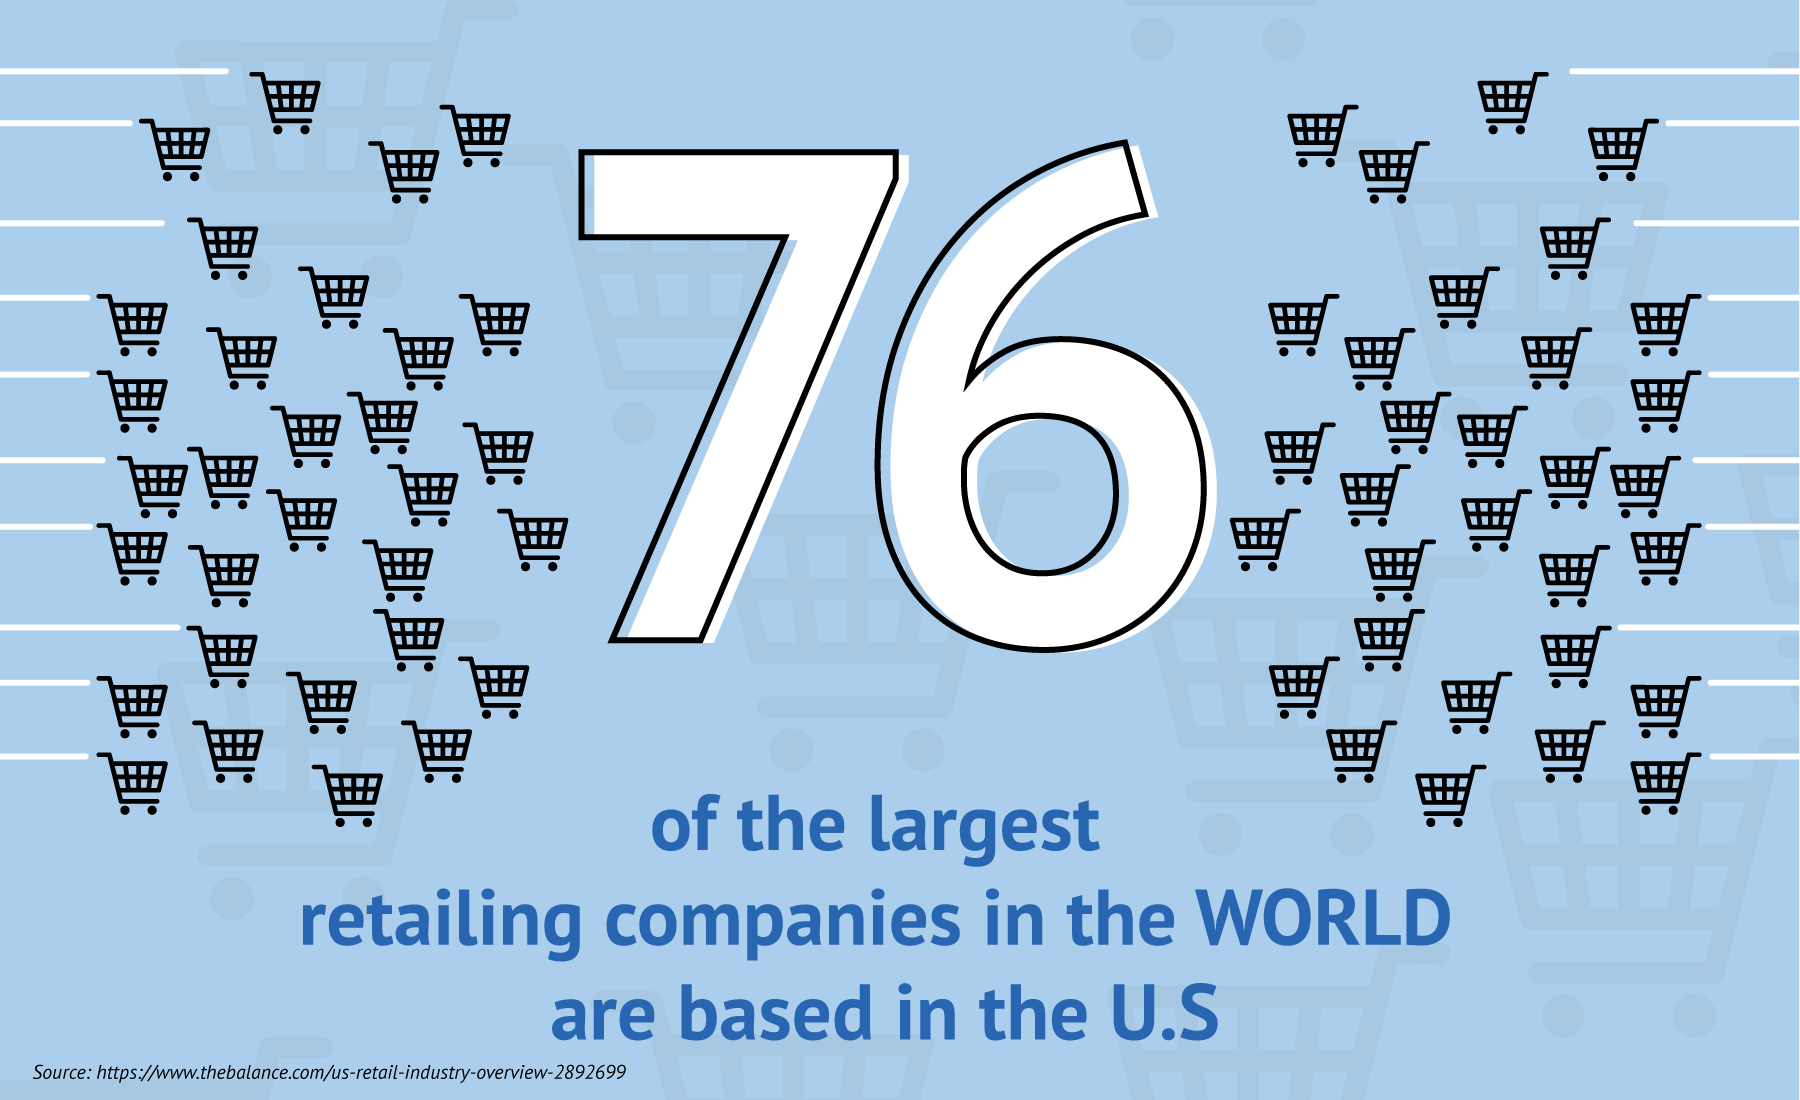 Seventy six of the largest retailing companies in the world are based in the U.S